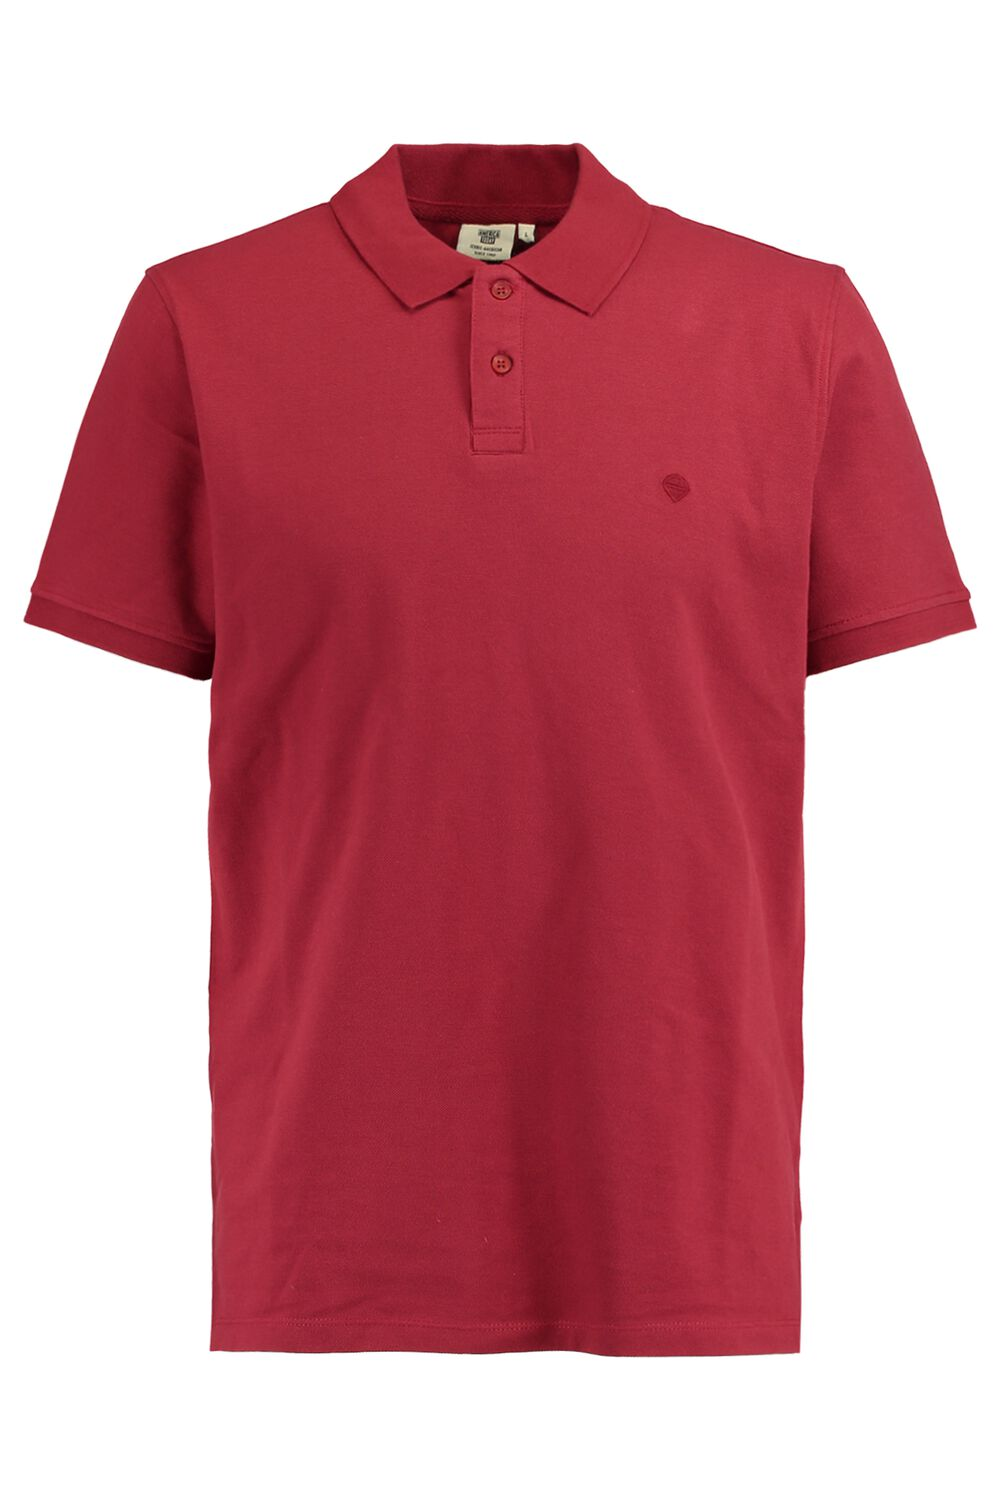 America Today Heren Polo Elton Rood